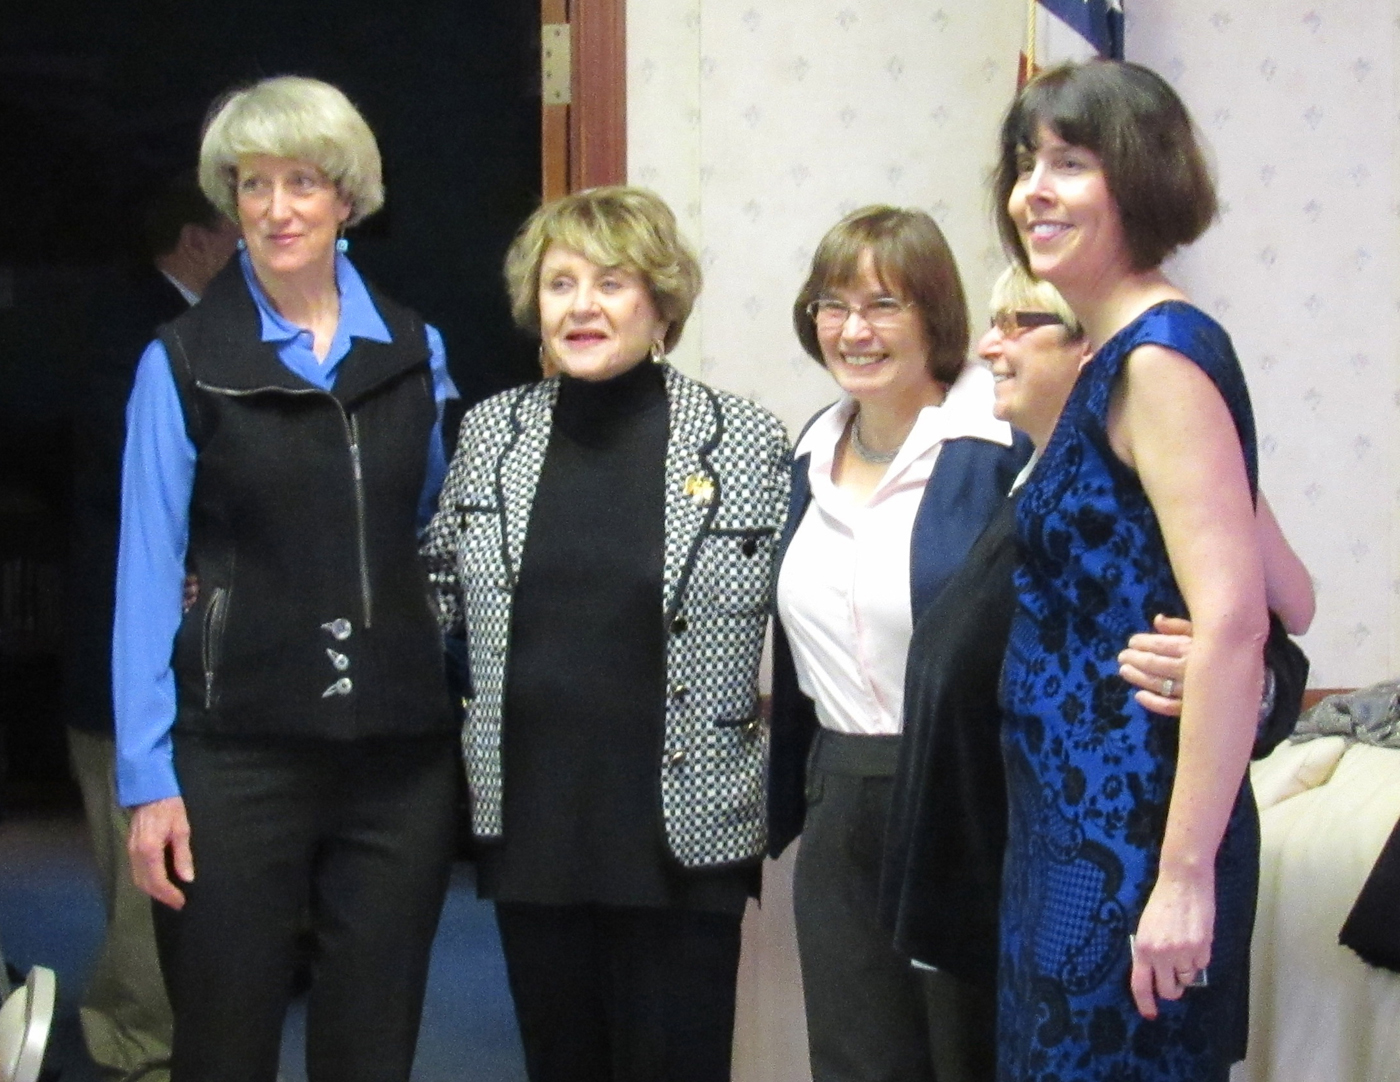 Brockport Mayor Margay Blackman, Congresswoman Louise Slaughter, Brockport Village Trustee Annie Crane, Sweden Town Council Member Lori Skoog and Sweden Town Council Member Mary Rich (l-r) pose for photos on January 3 at The Center in Brockport, just prior to the swearing-in ceremony.